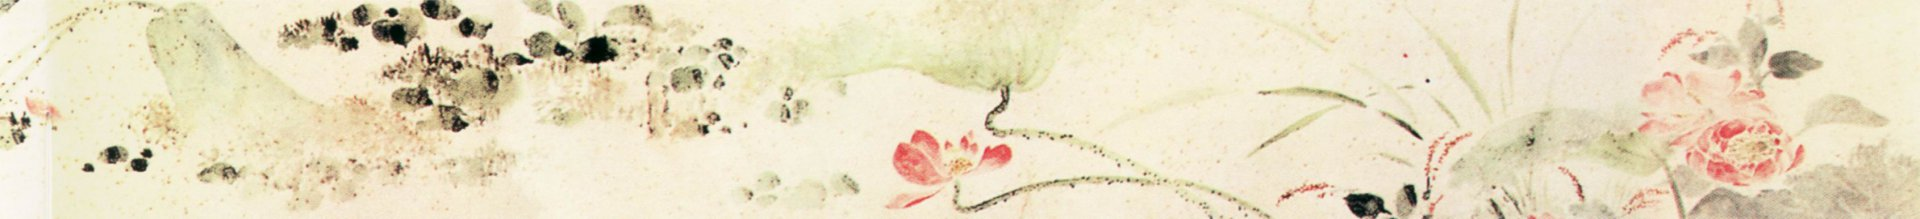 052_1b0180d.Ancient_Chinese_Painting.jpg